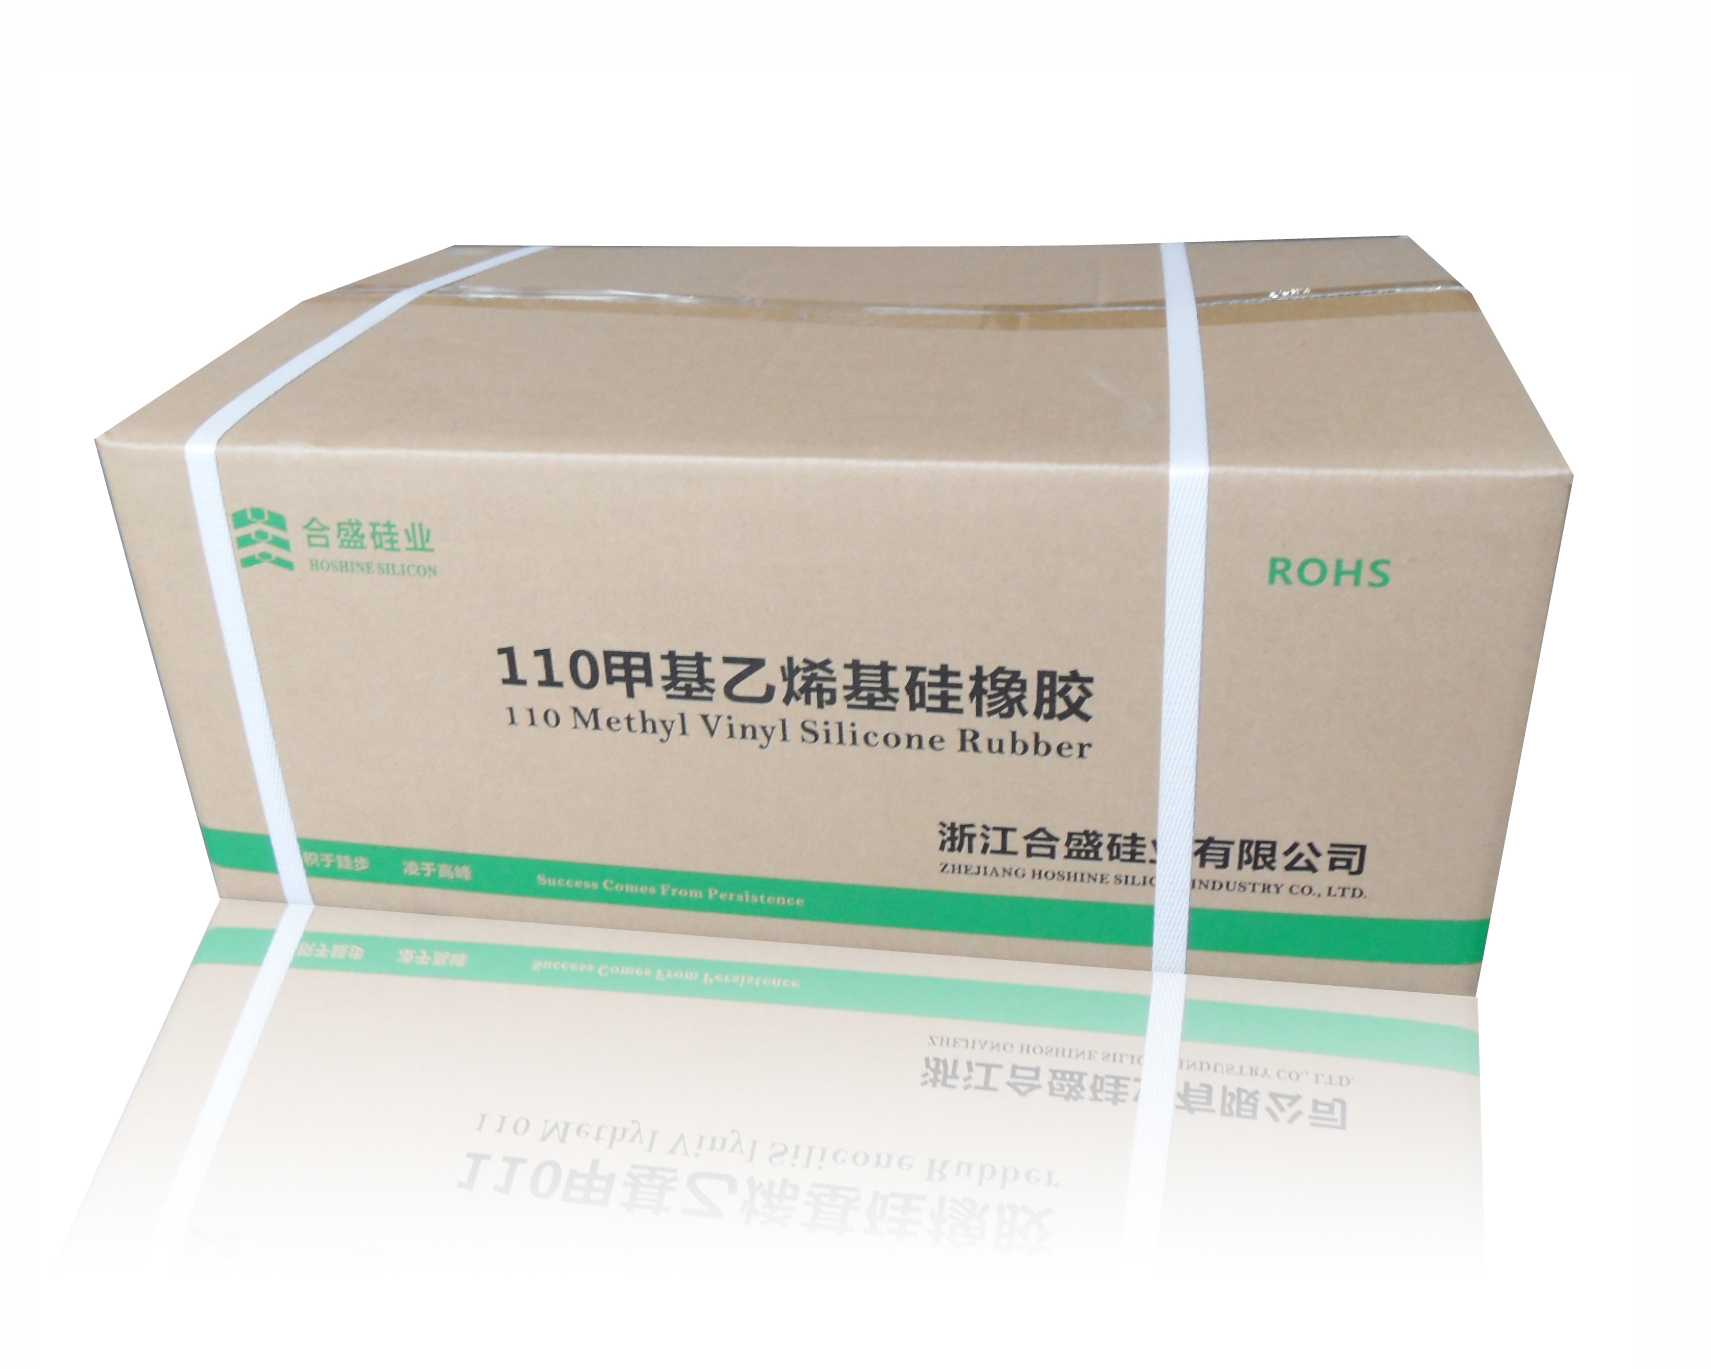 110 Methyl Vinyl Silicone Rubber